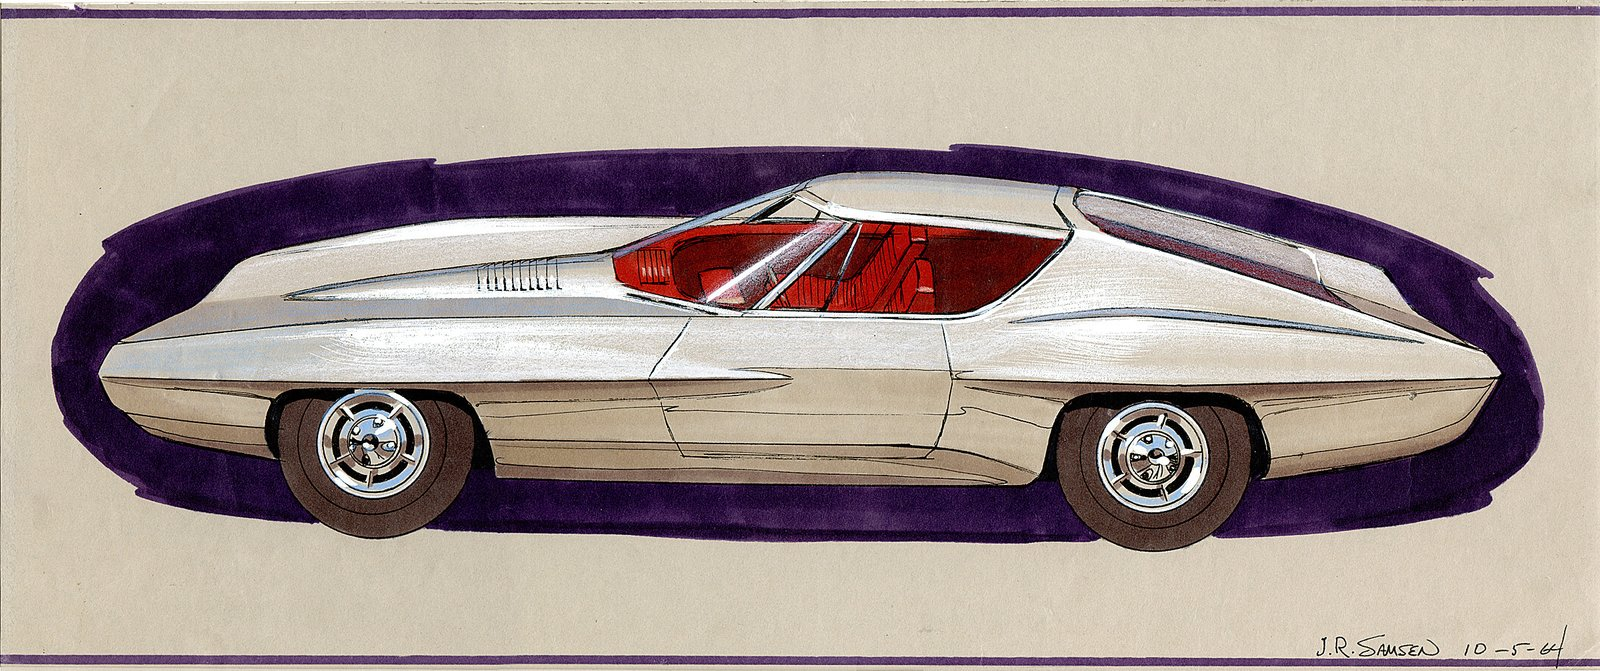 John Samen, Design for a Plymouth Barracuda, 1964.